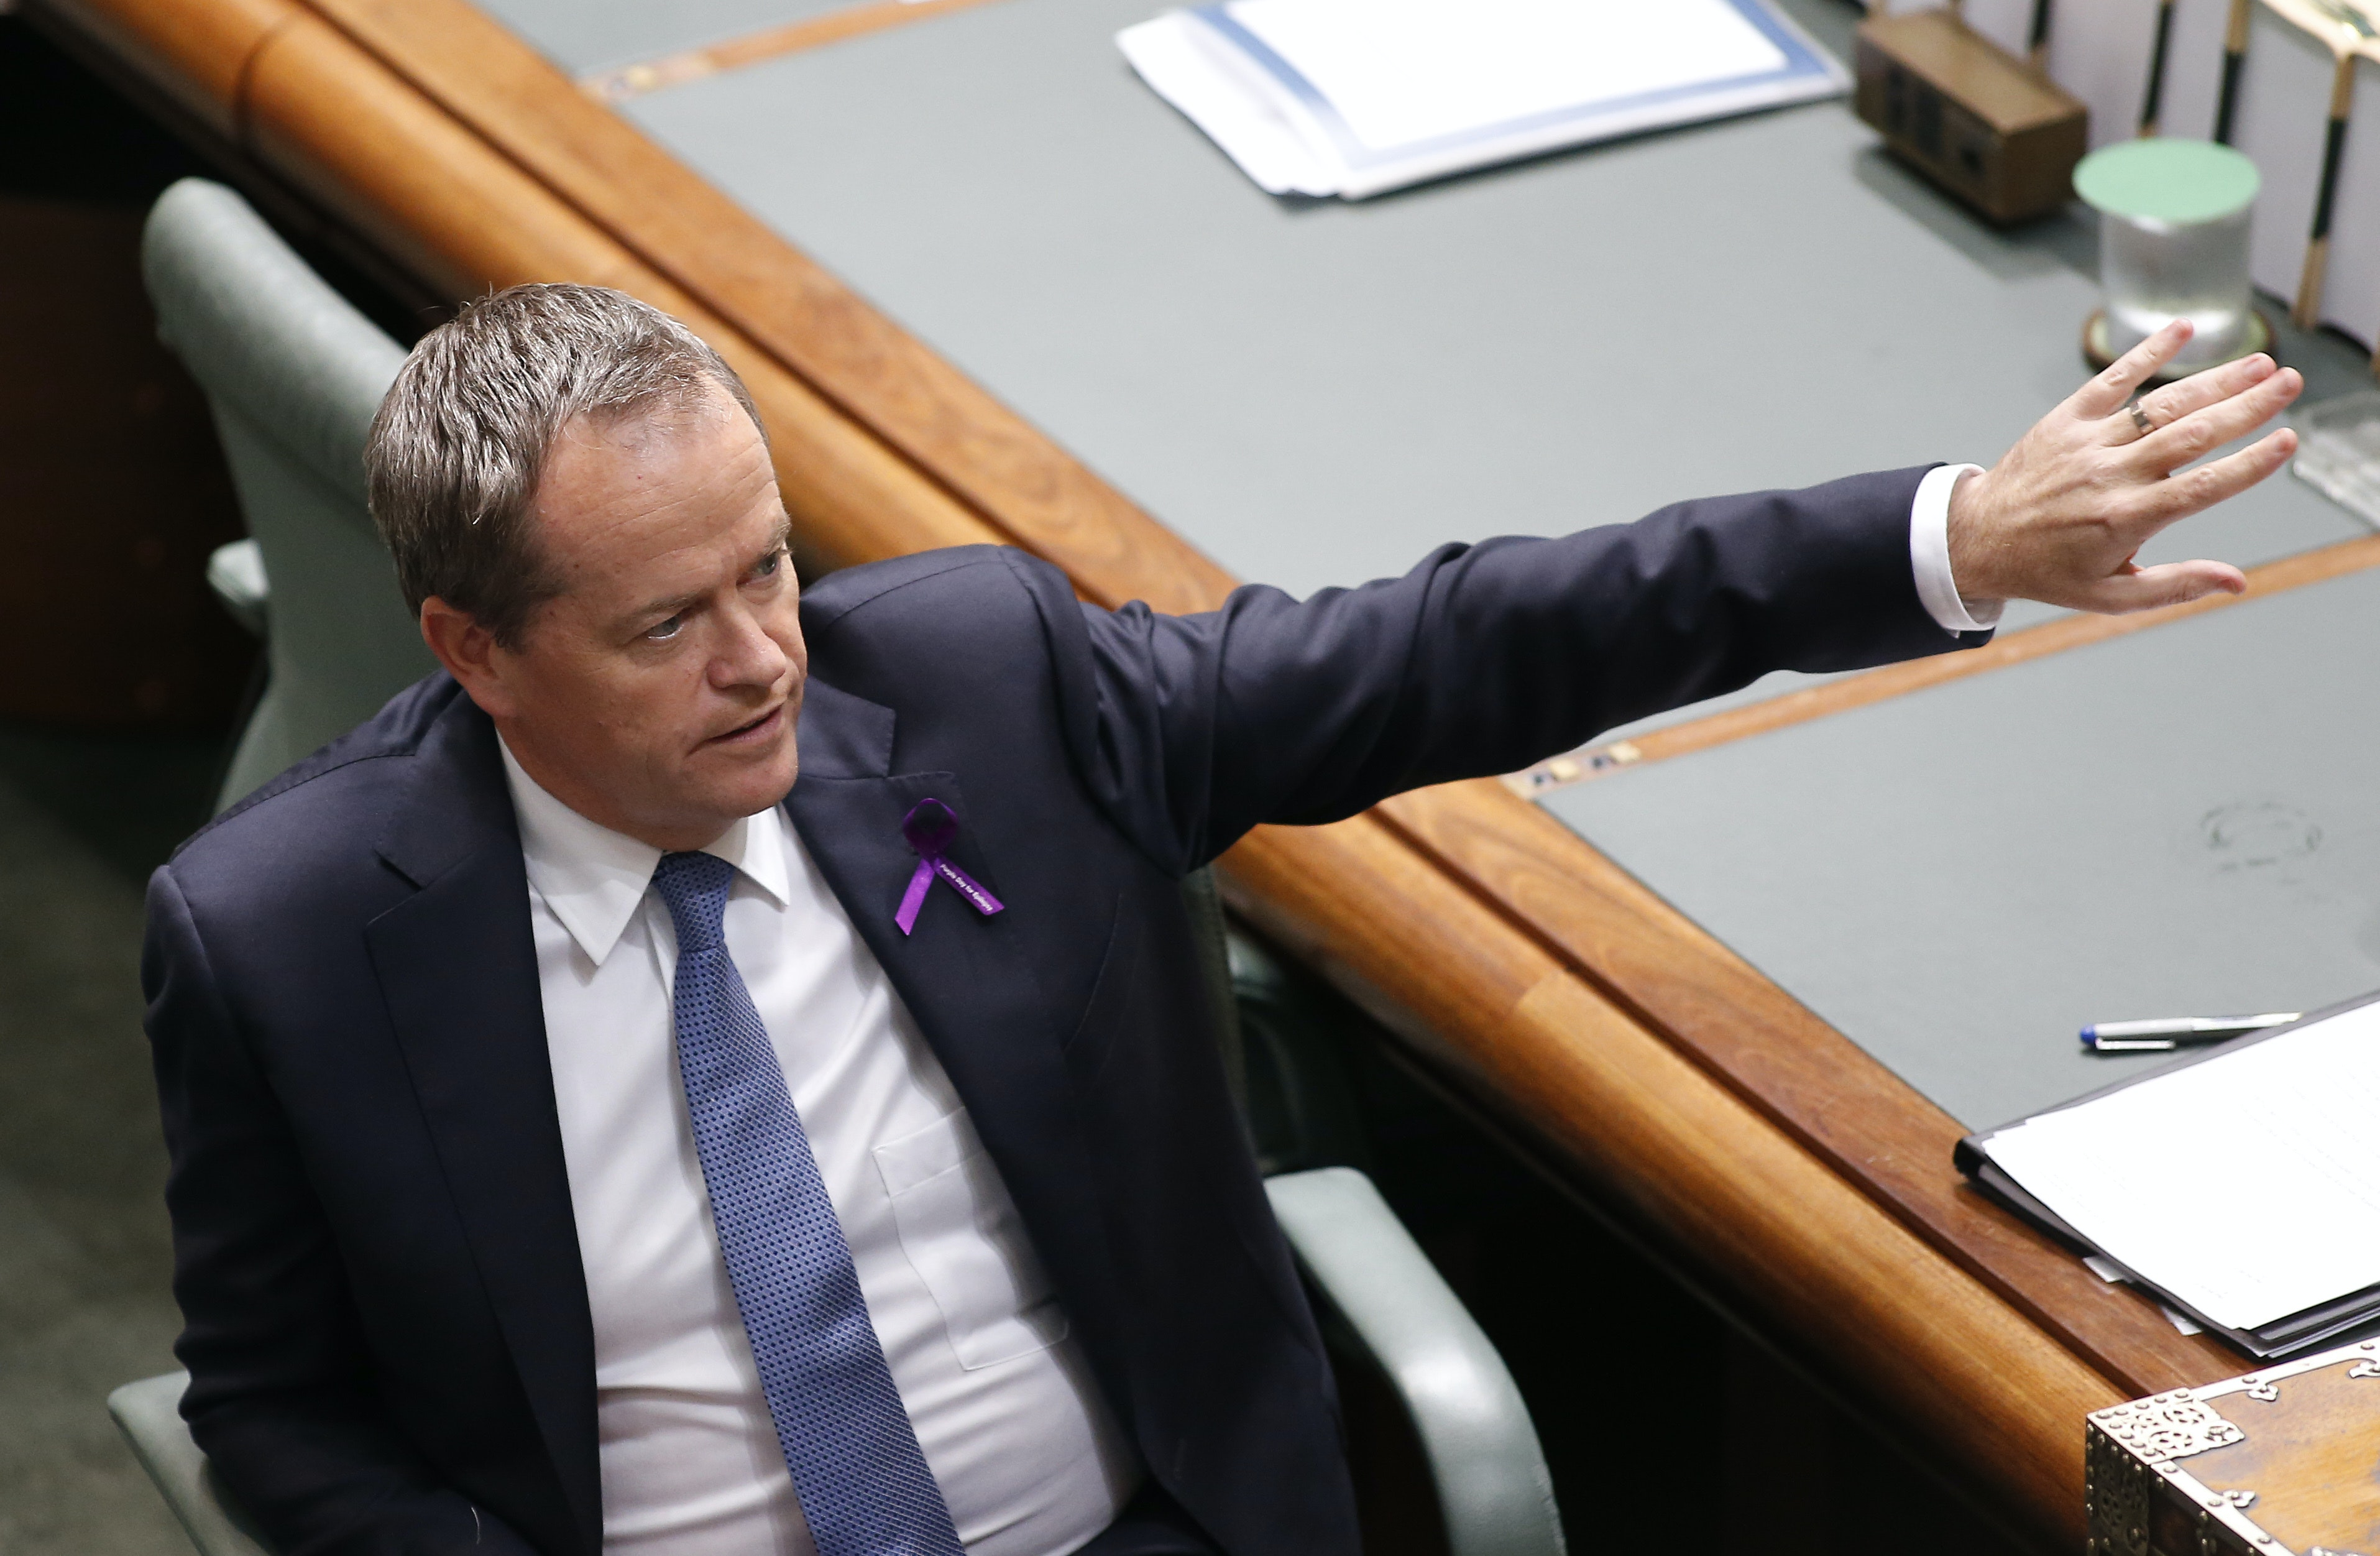 The Australian Labor Party and the pitfalls of the politics of avoidance